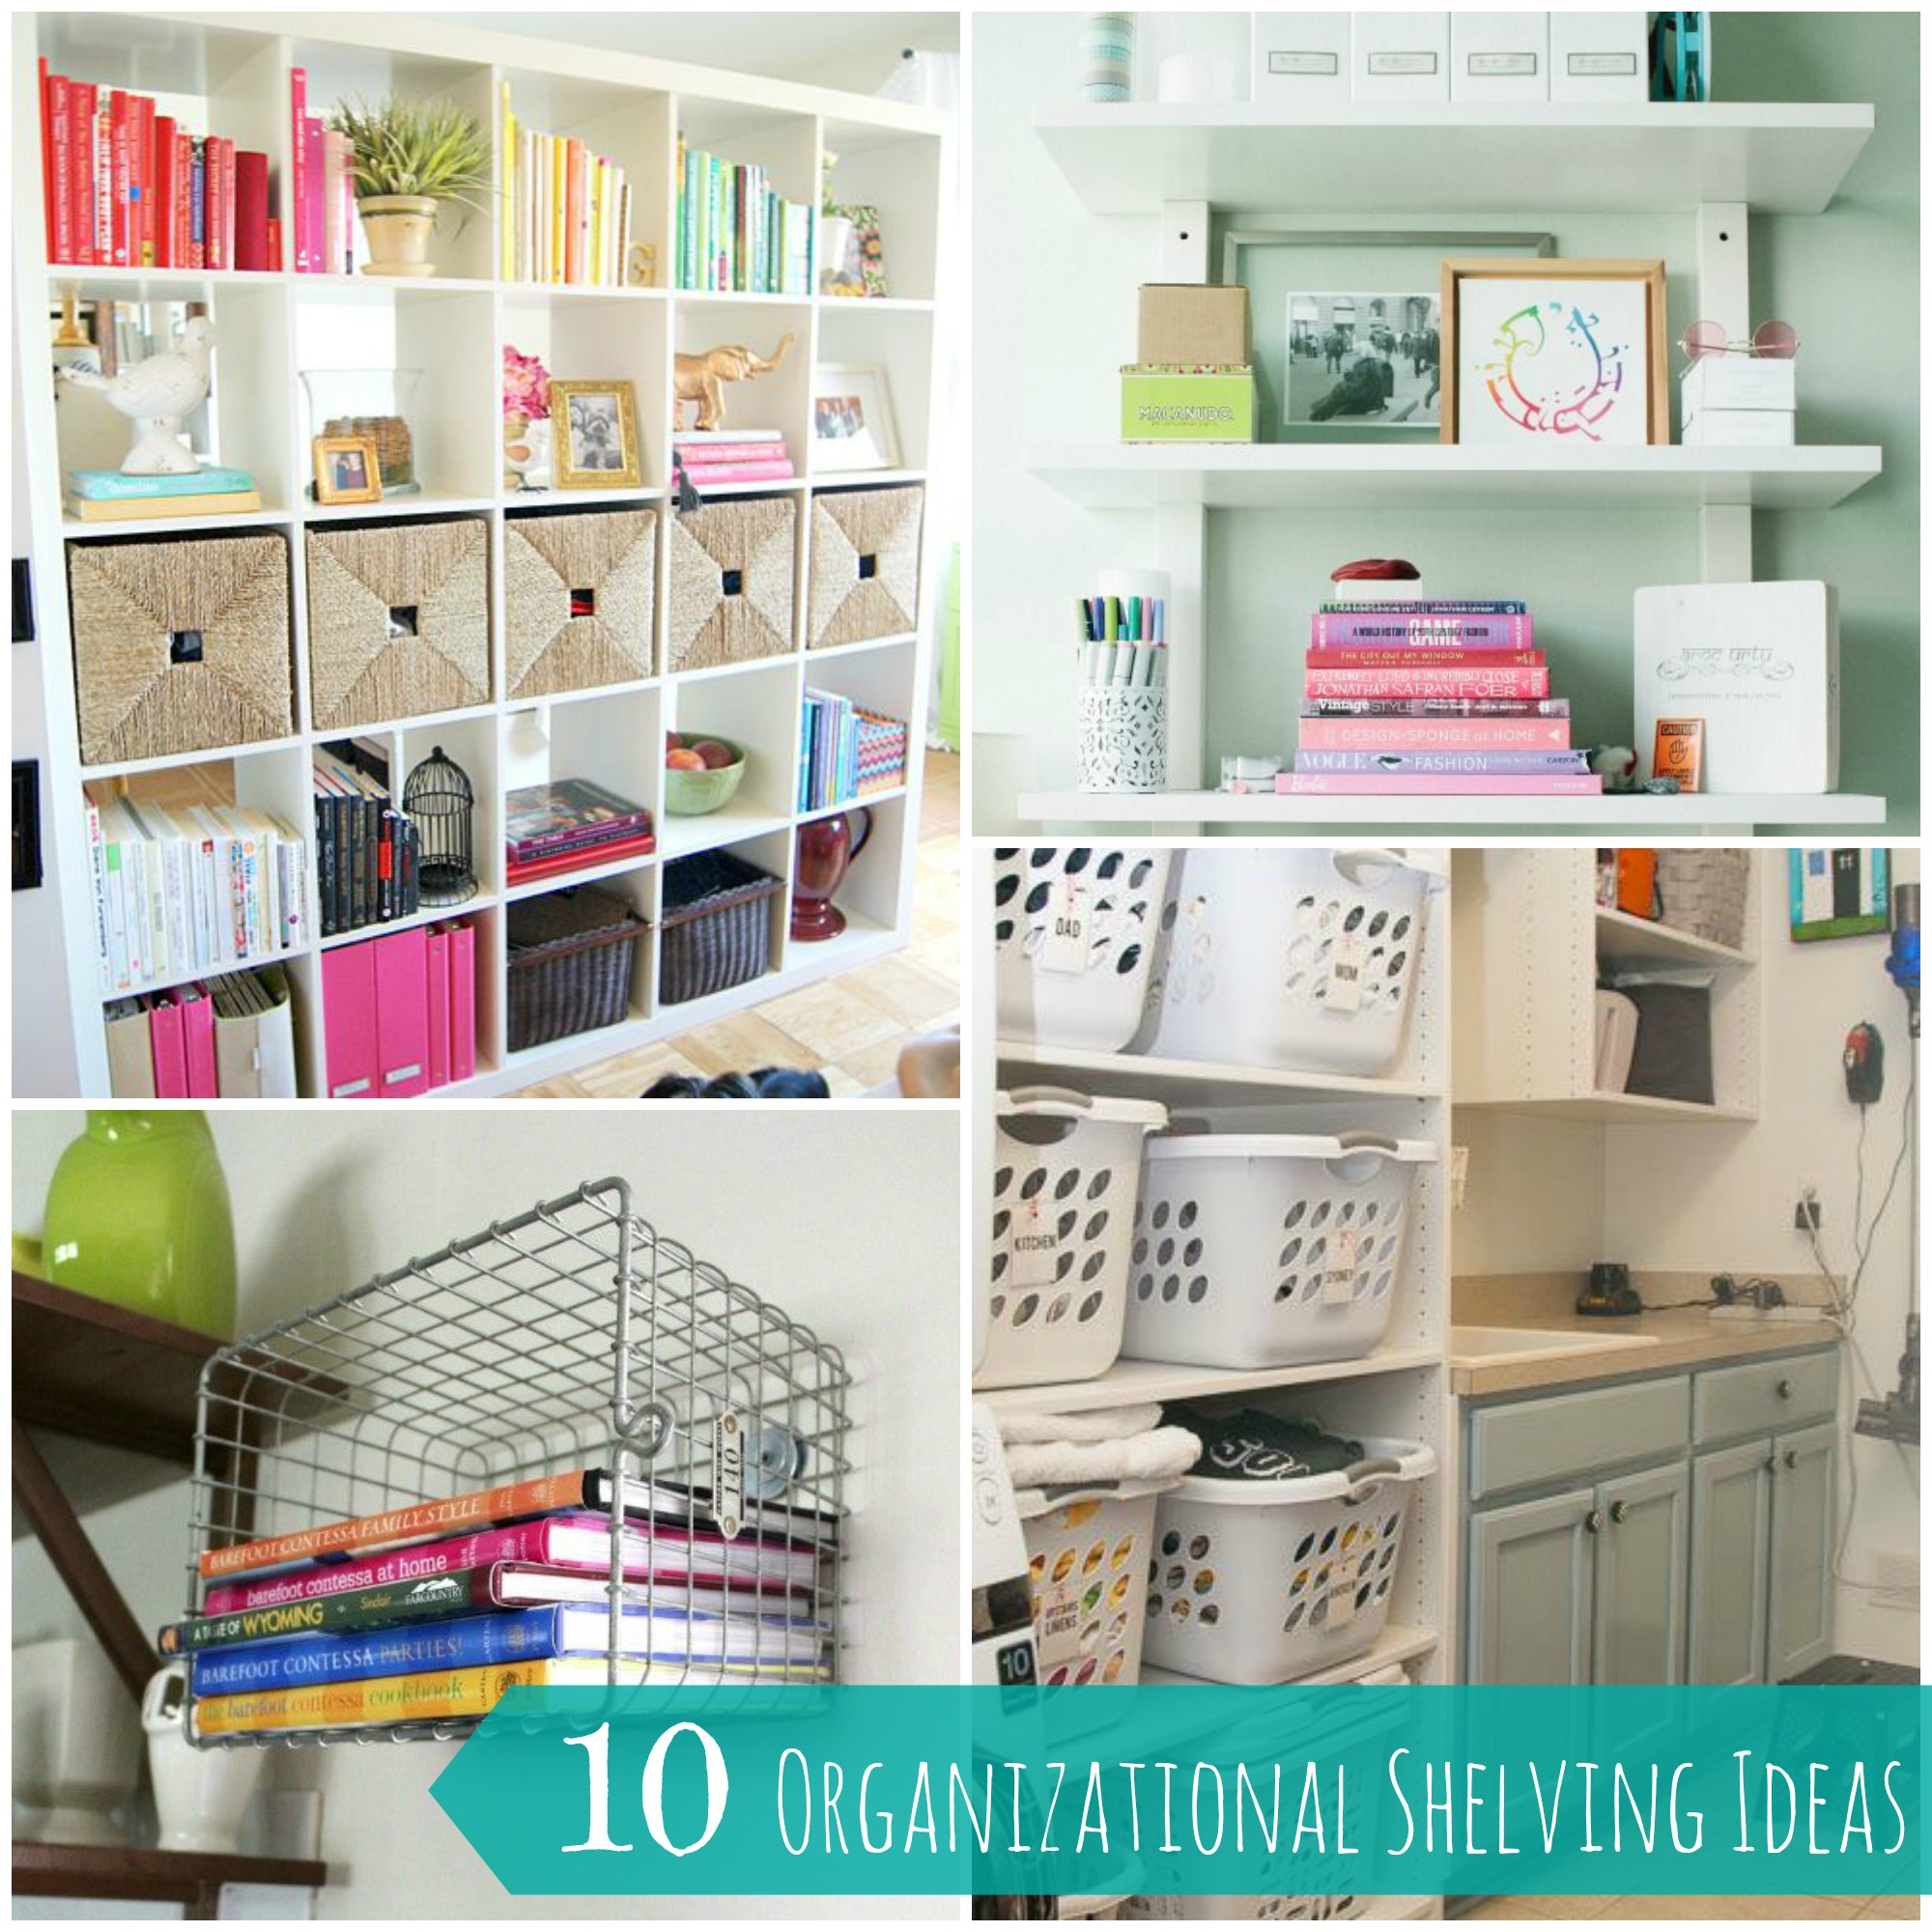 10 easy and creative shelving organization ideas for your home rh getcreativejuice com shelves organization ideas shelves organization ideas